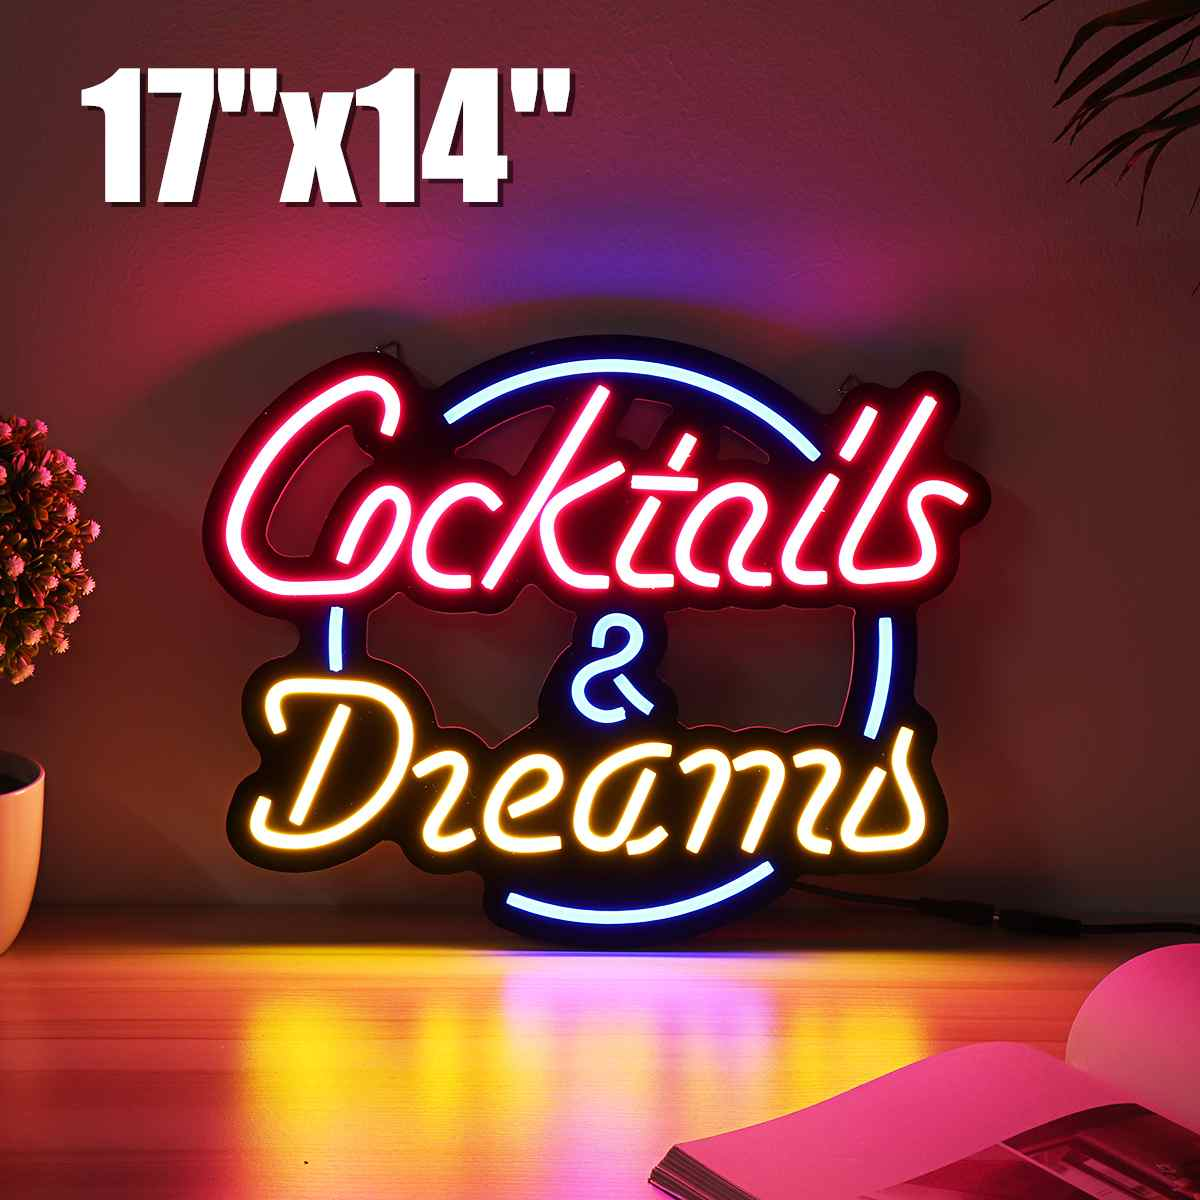 17x14 Cocktail Dream Real Glass Tube Neon Light Sign Tavern Beer Bar Pub Decoration Neon Lamp Board Commercial Lighting